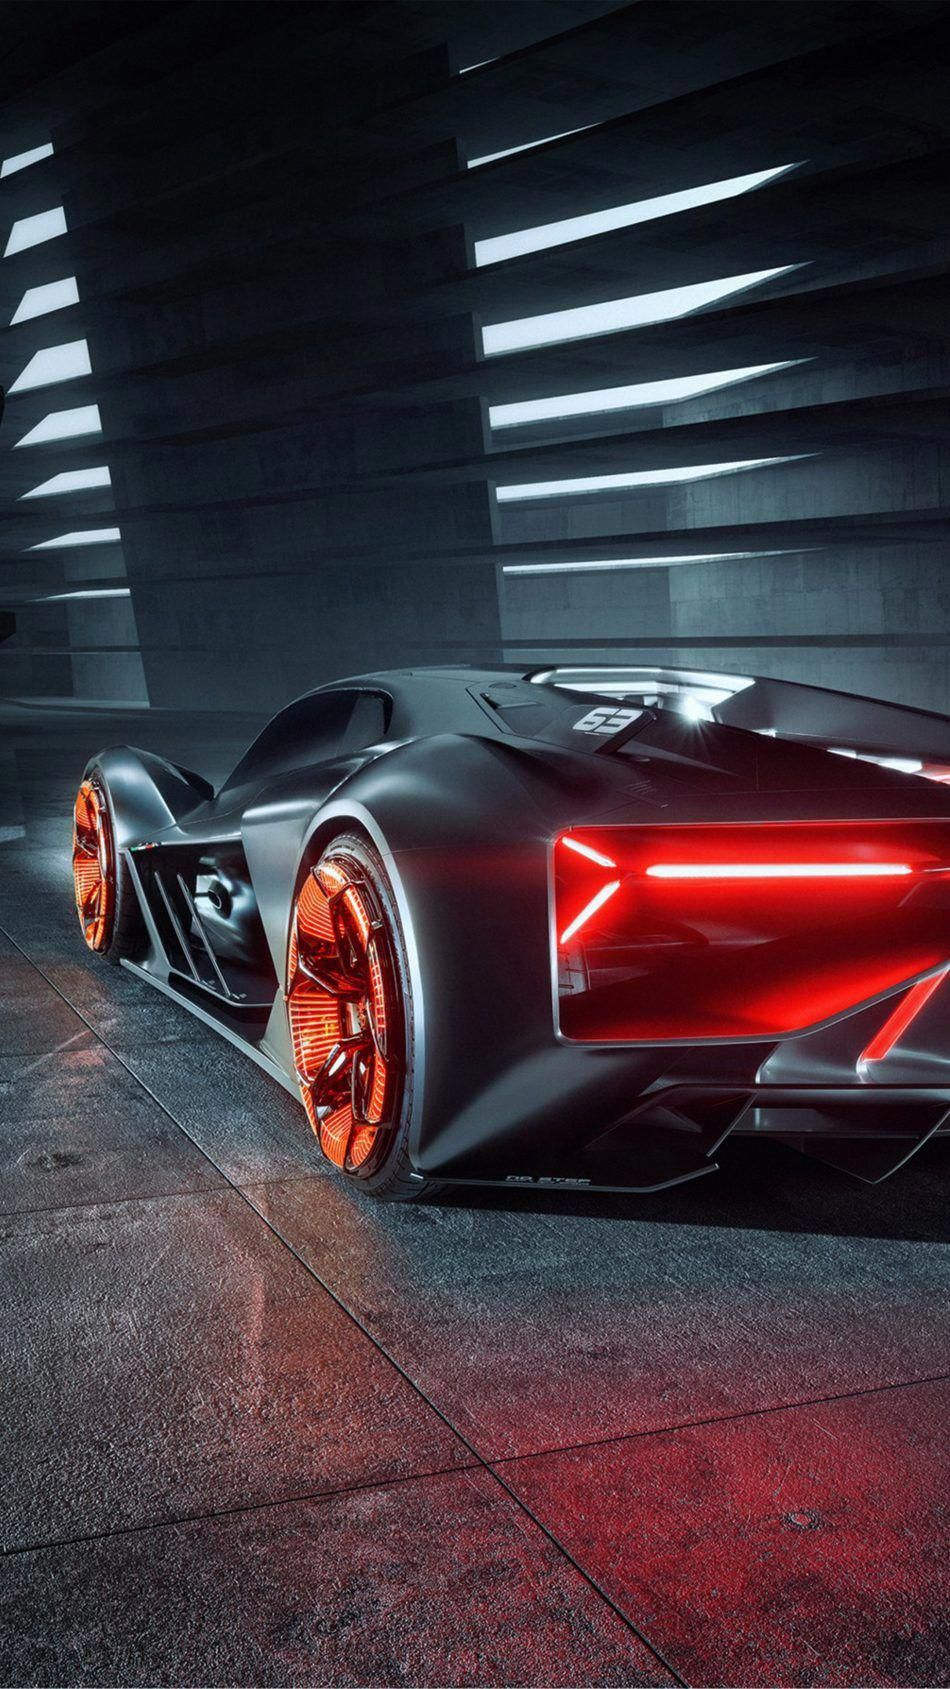 Lamborghini Terzo Millennio 4k Ultra Hd Mobile Wallpaper Lamborghiniclassiccars Sports Car Wallpaper Car Wallpaper For Mobile Bmw Wallpapers